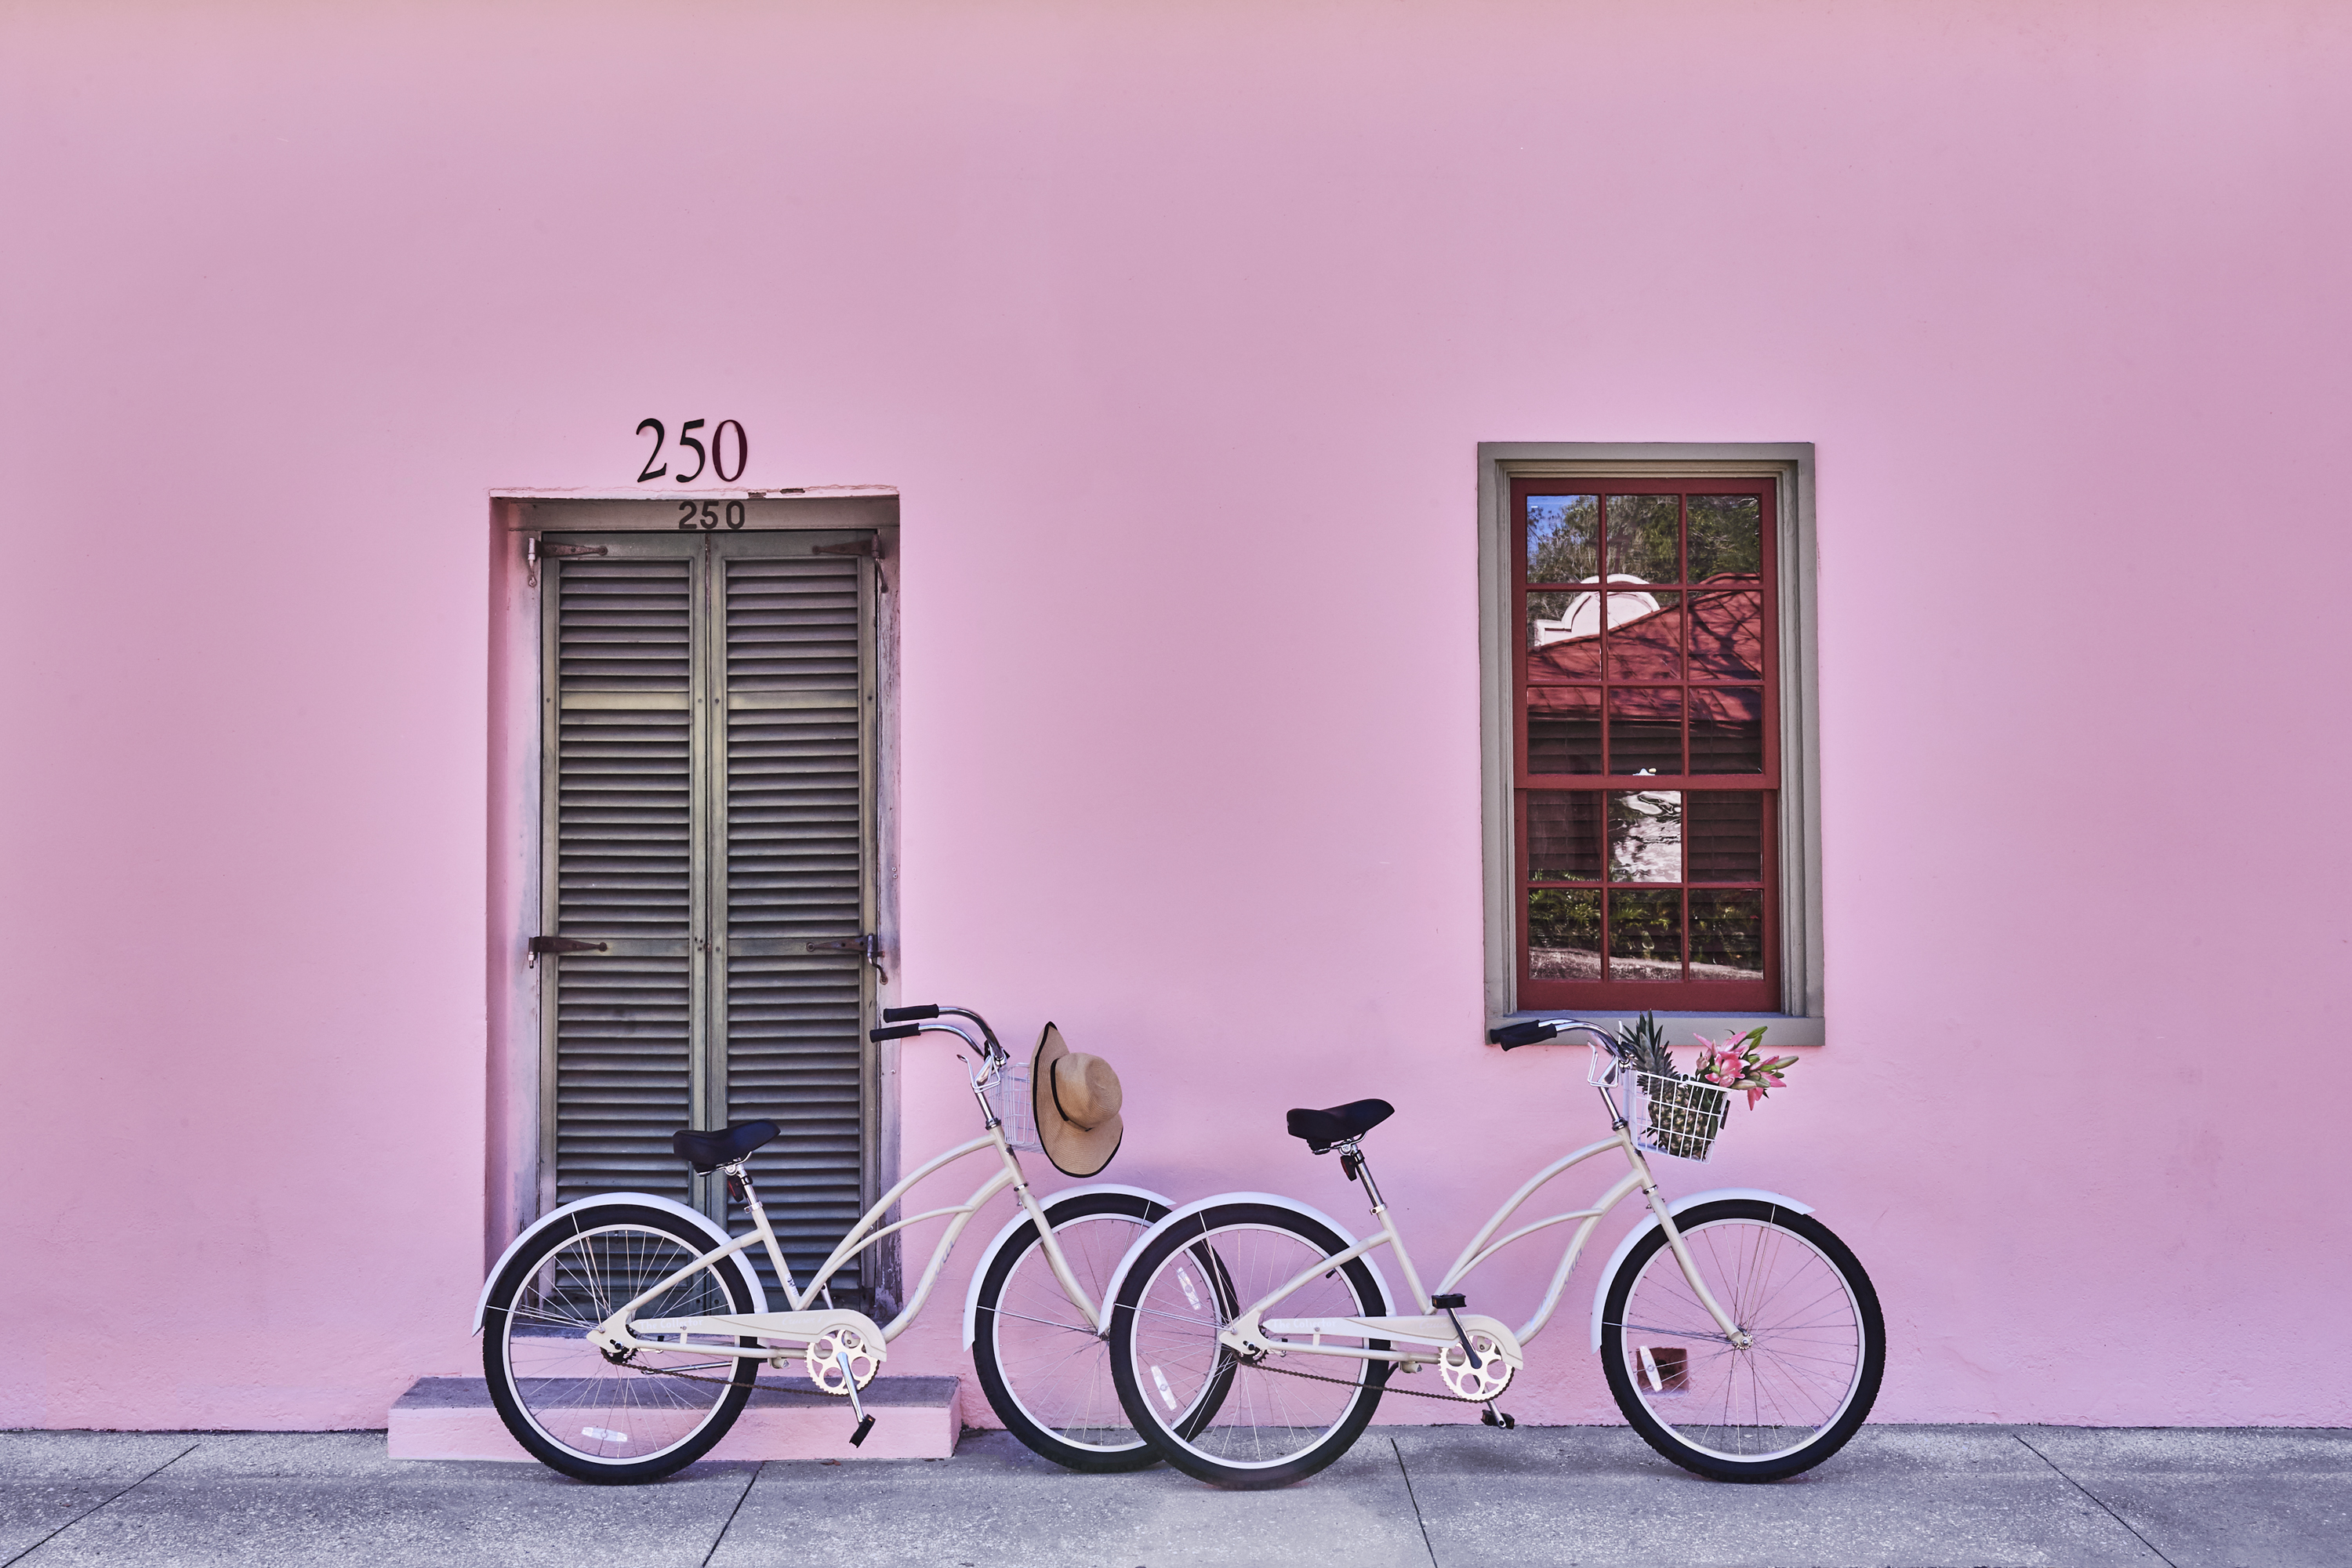 Explore the city on a vintage bicycle.